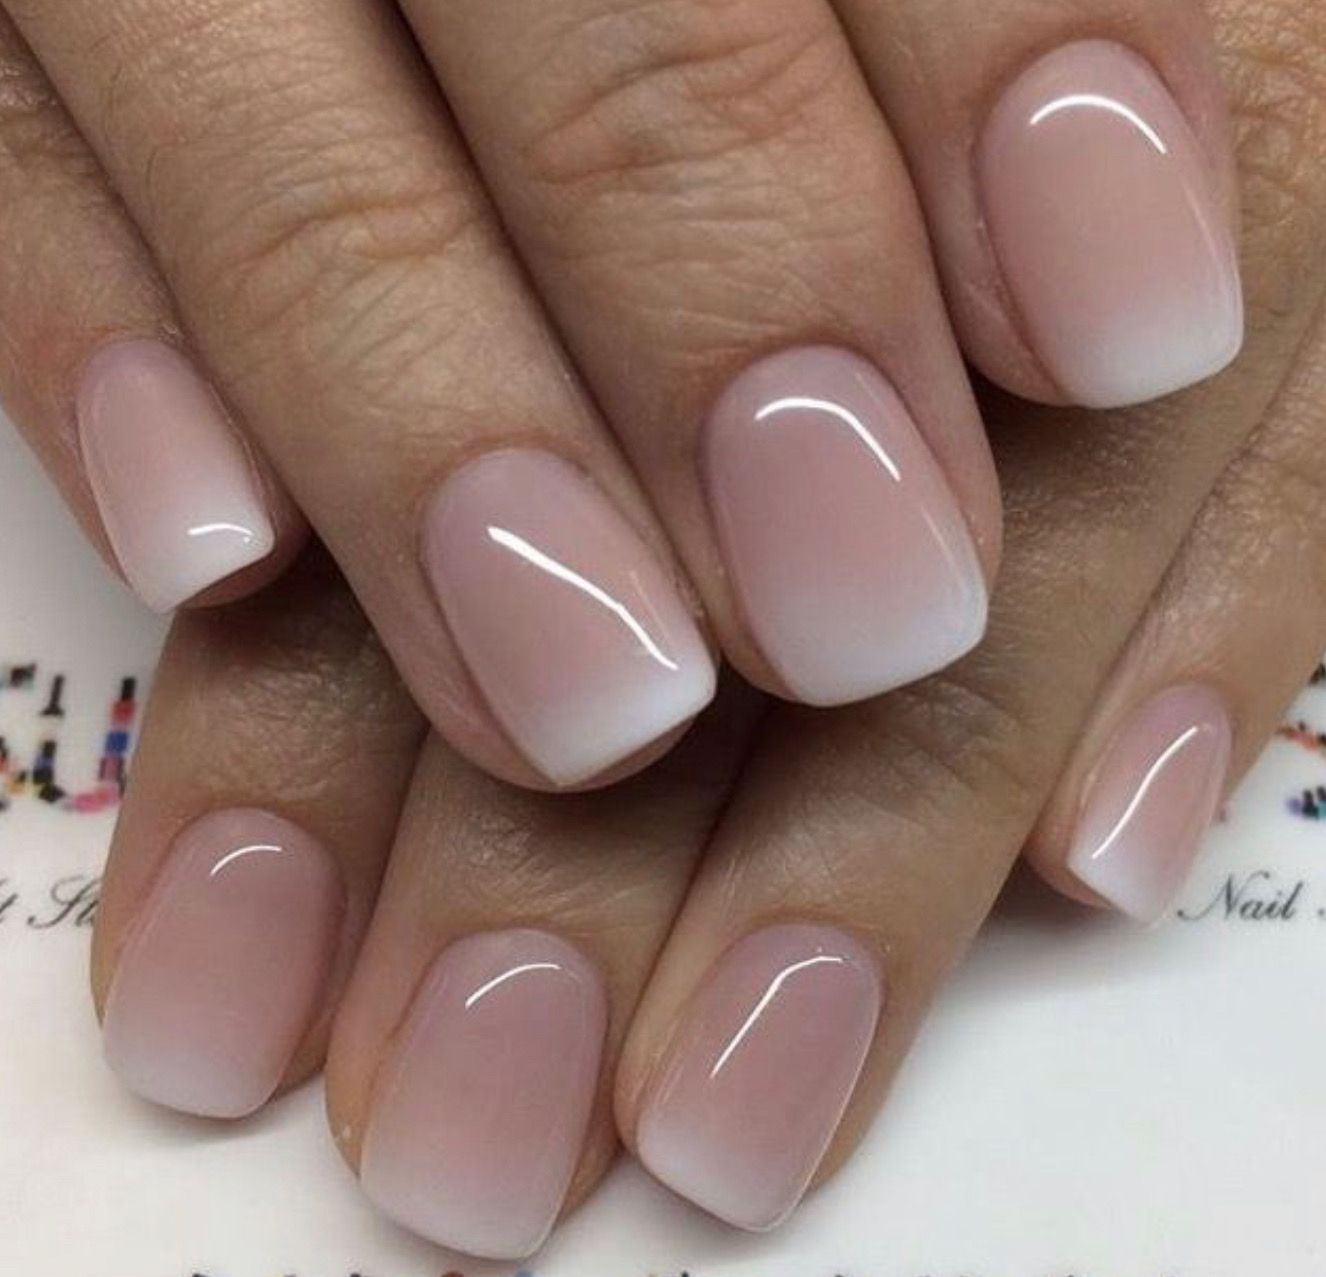 Pin By Berenyqa On My Girlie Stuff Light Colored Nails Wedding Nails French Trendy Nails